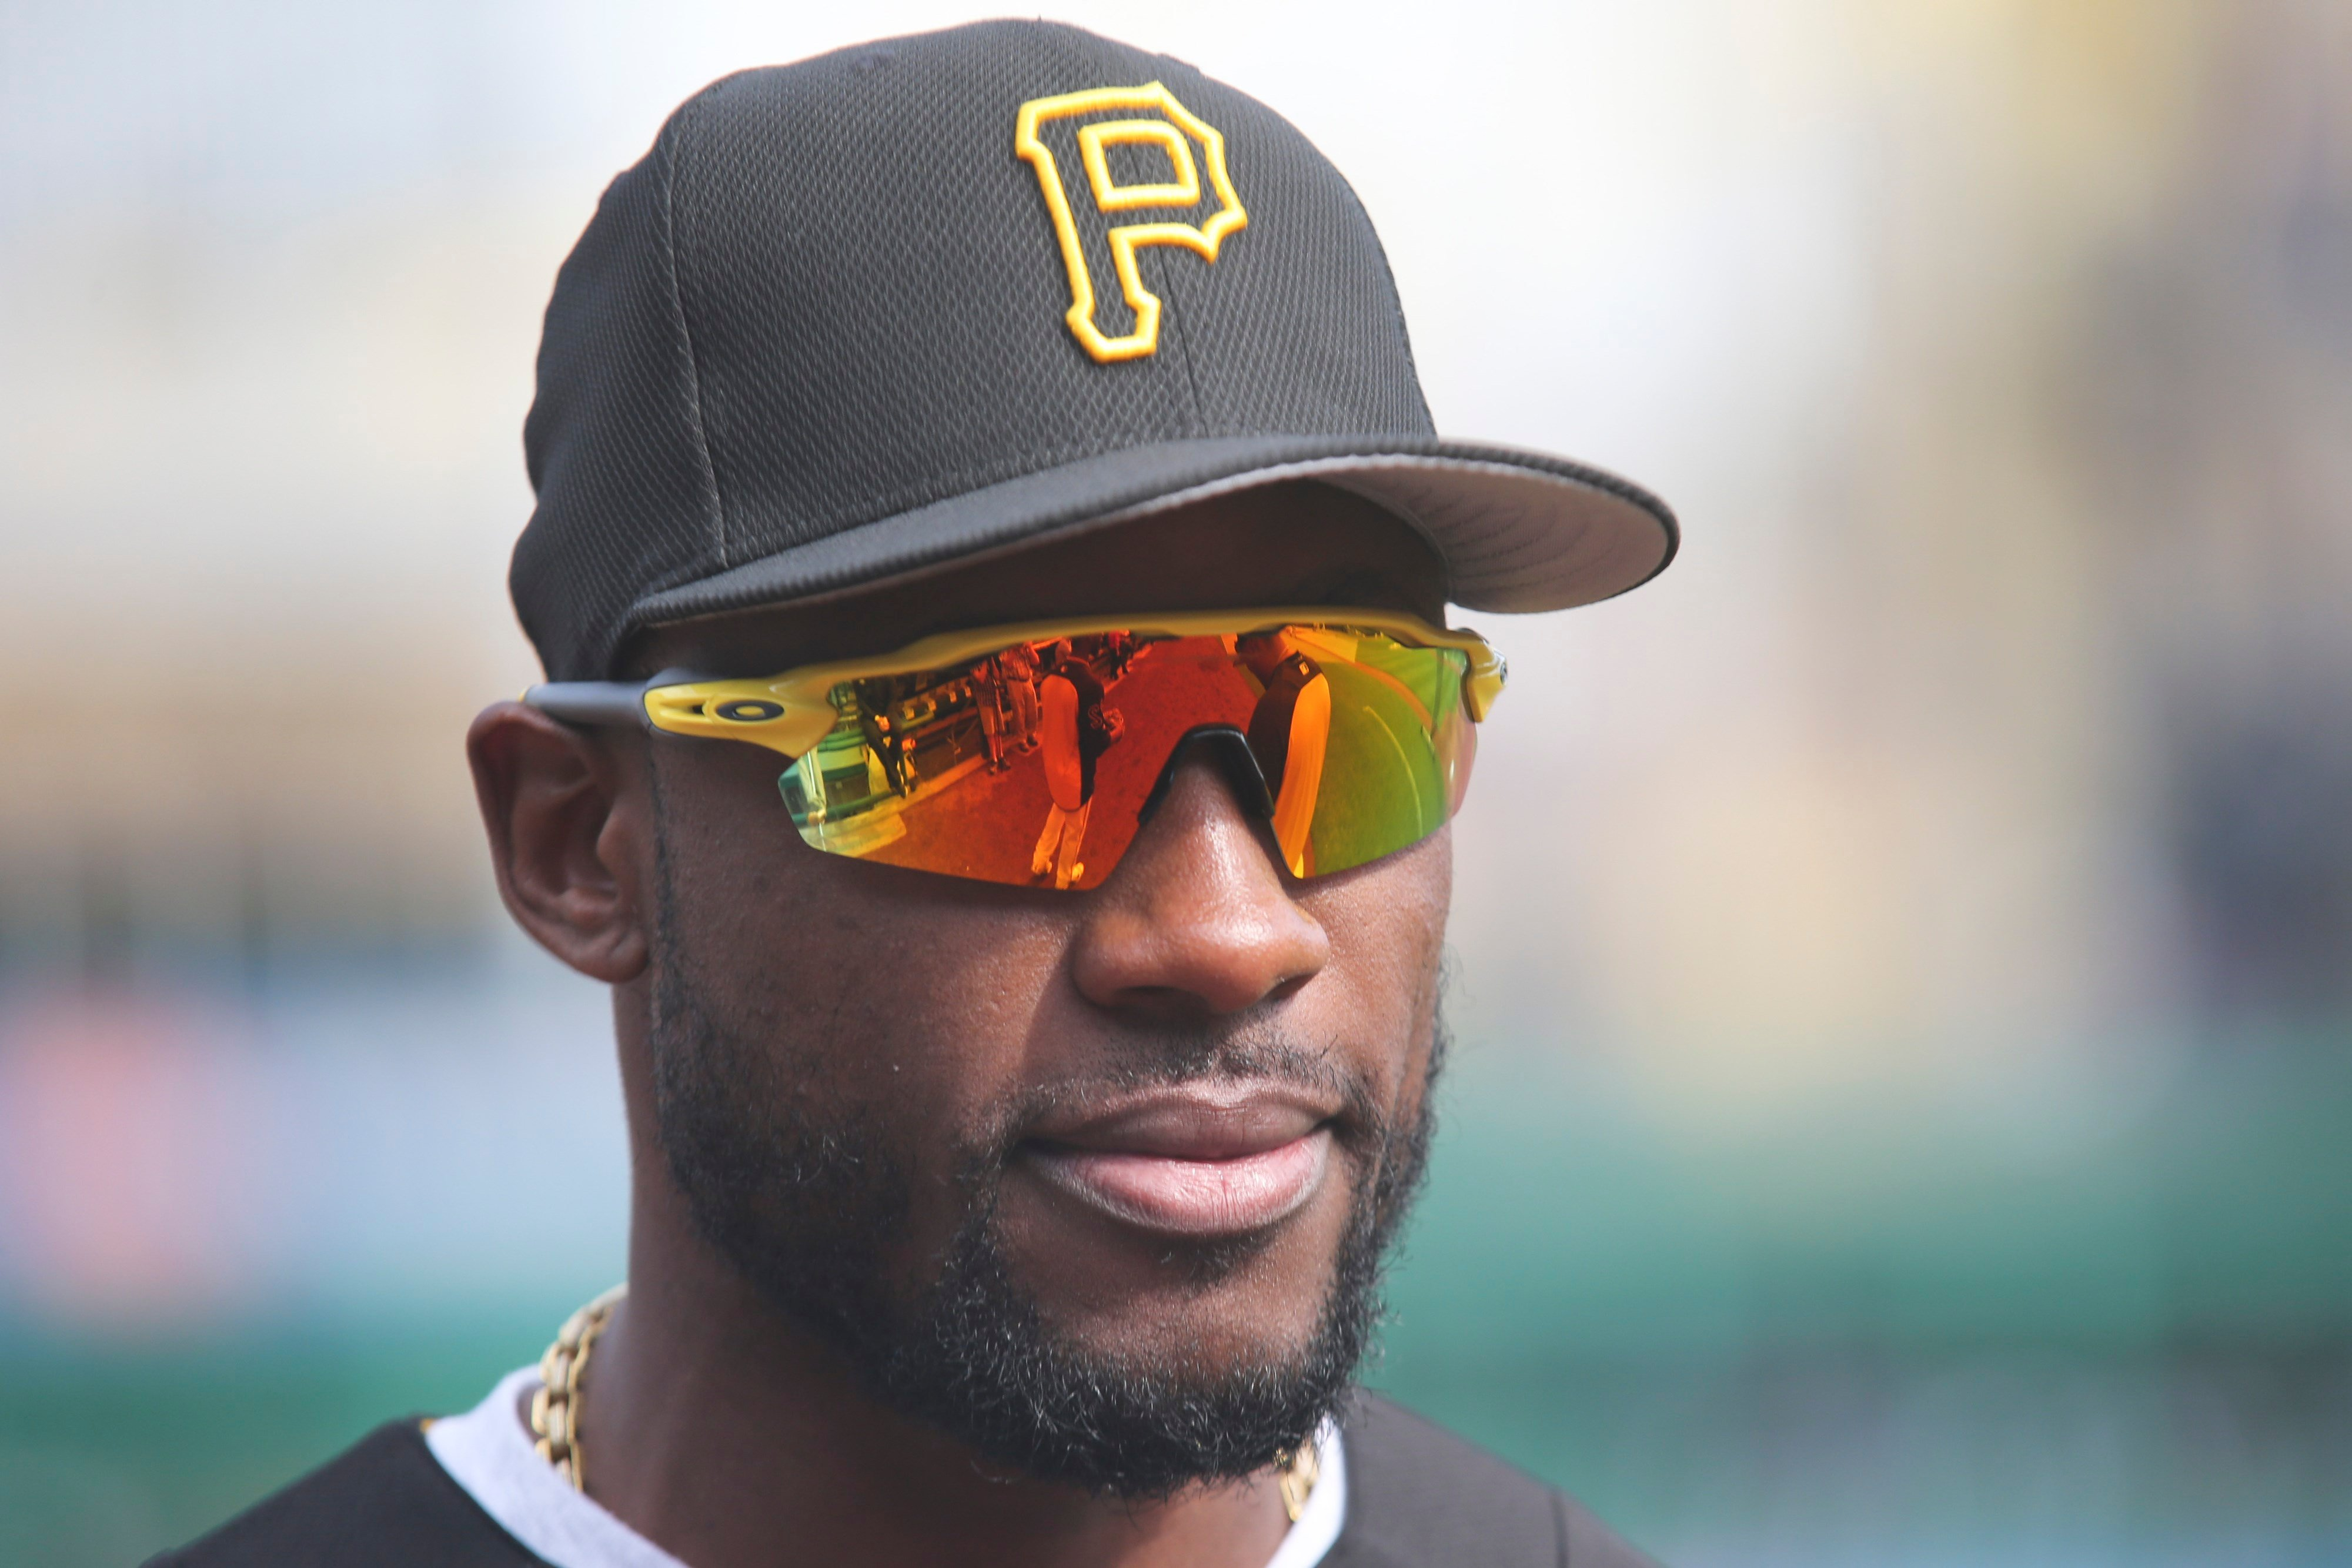 Pittsburgh Pirates center fielder Starling Marte before a baseball game against the Cincinnati Reds, Monday, April 10, 2017, in Pittsburgh. (AP Photo/Keith Srakocic)